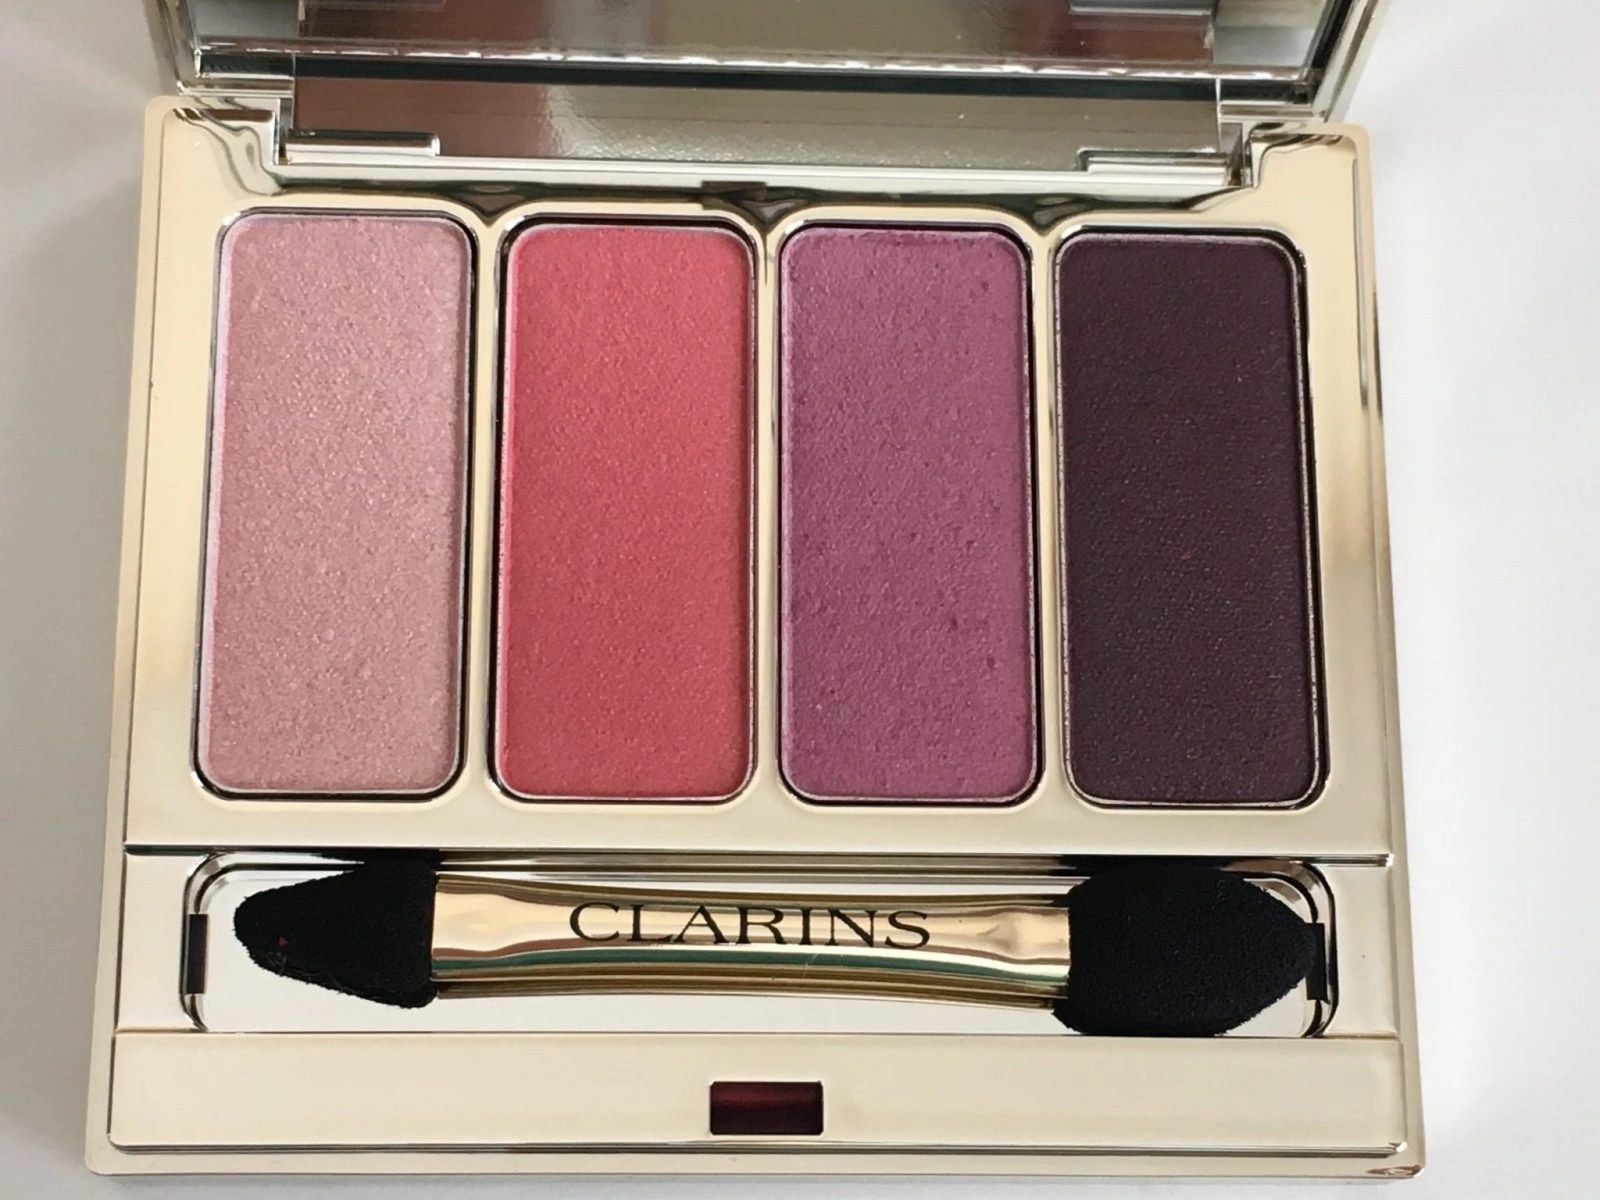 Clarins Shadows Up Close